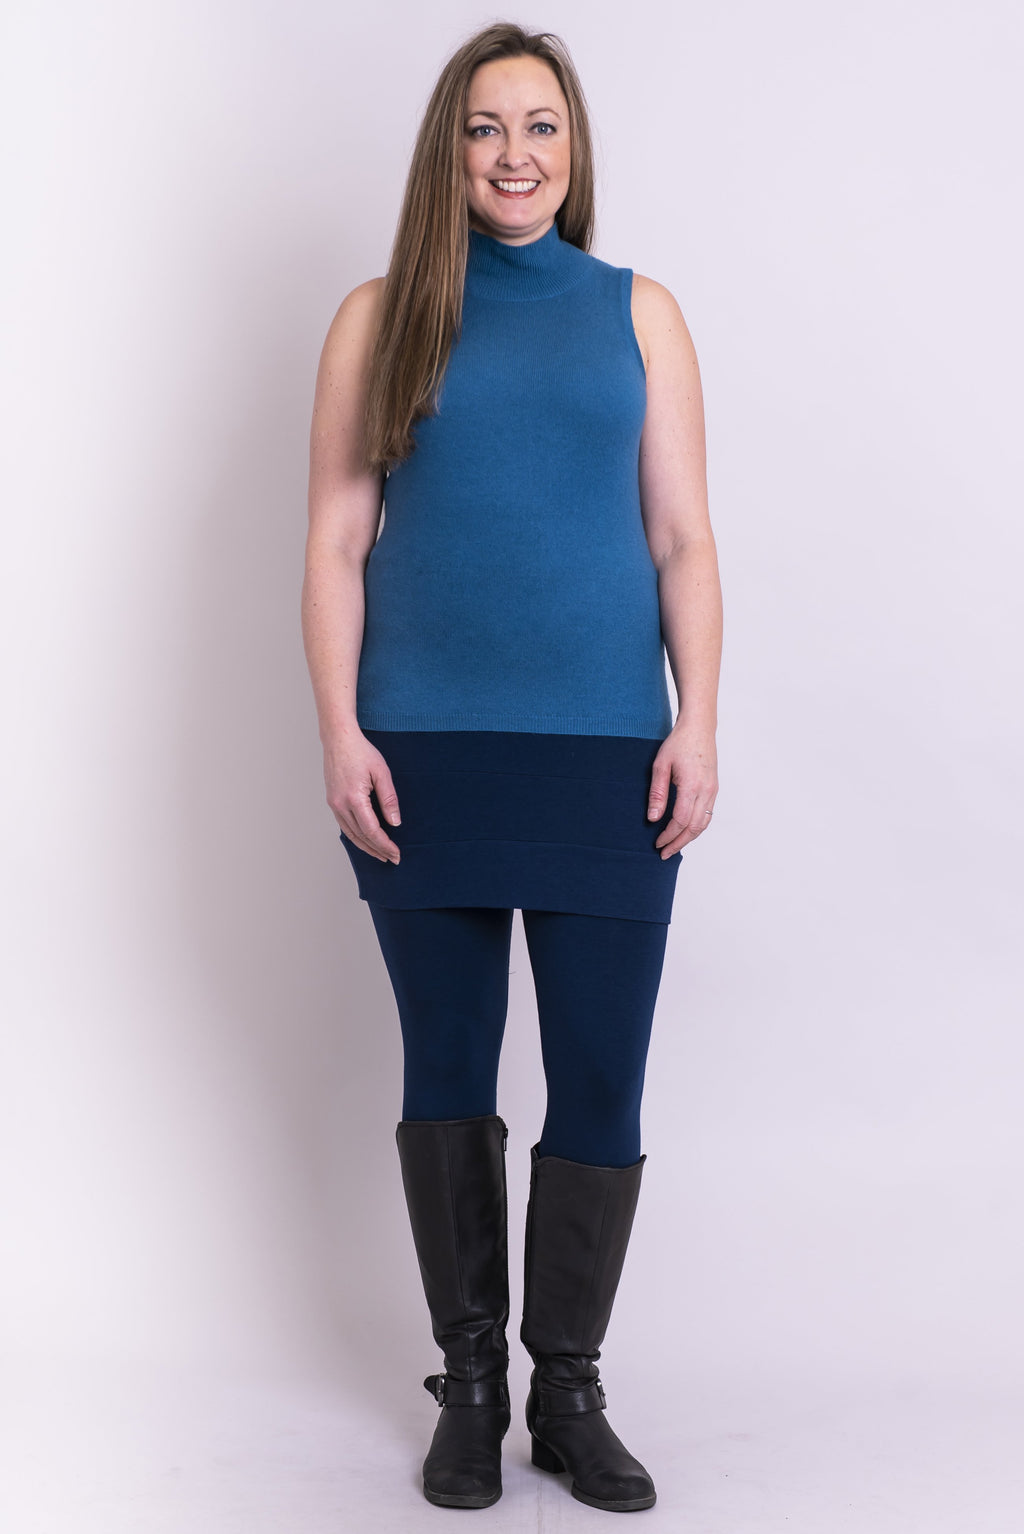 Joplin Sweater, Blue Topaz, Cashmere - Blue Sky Clothing Co